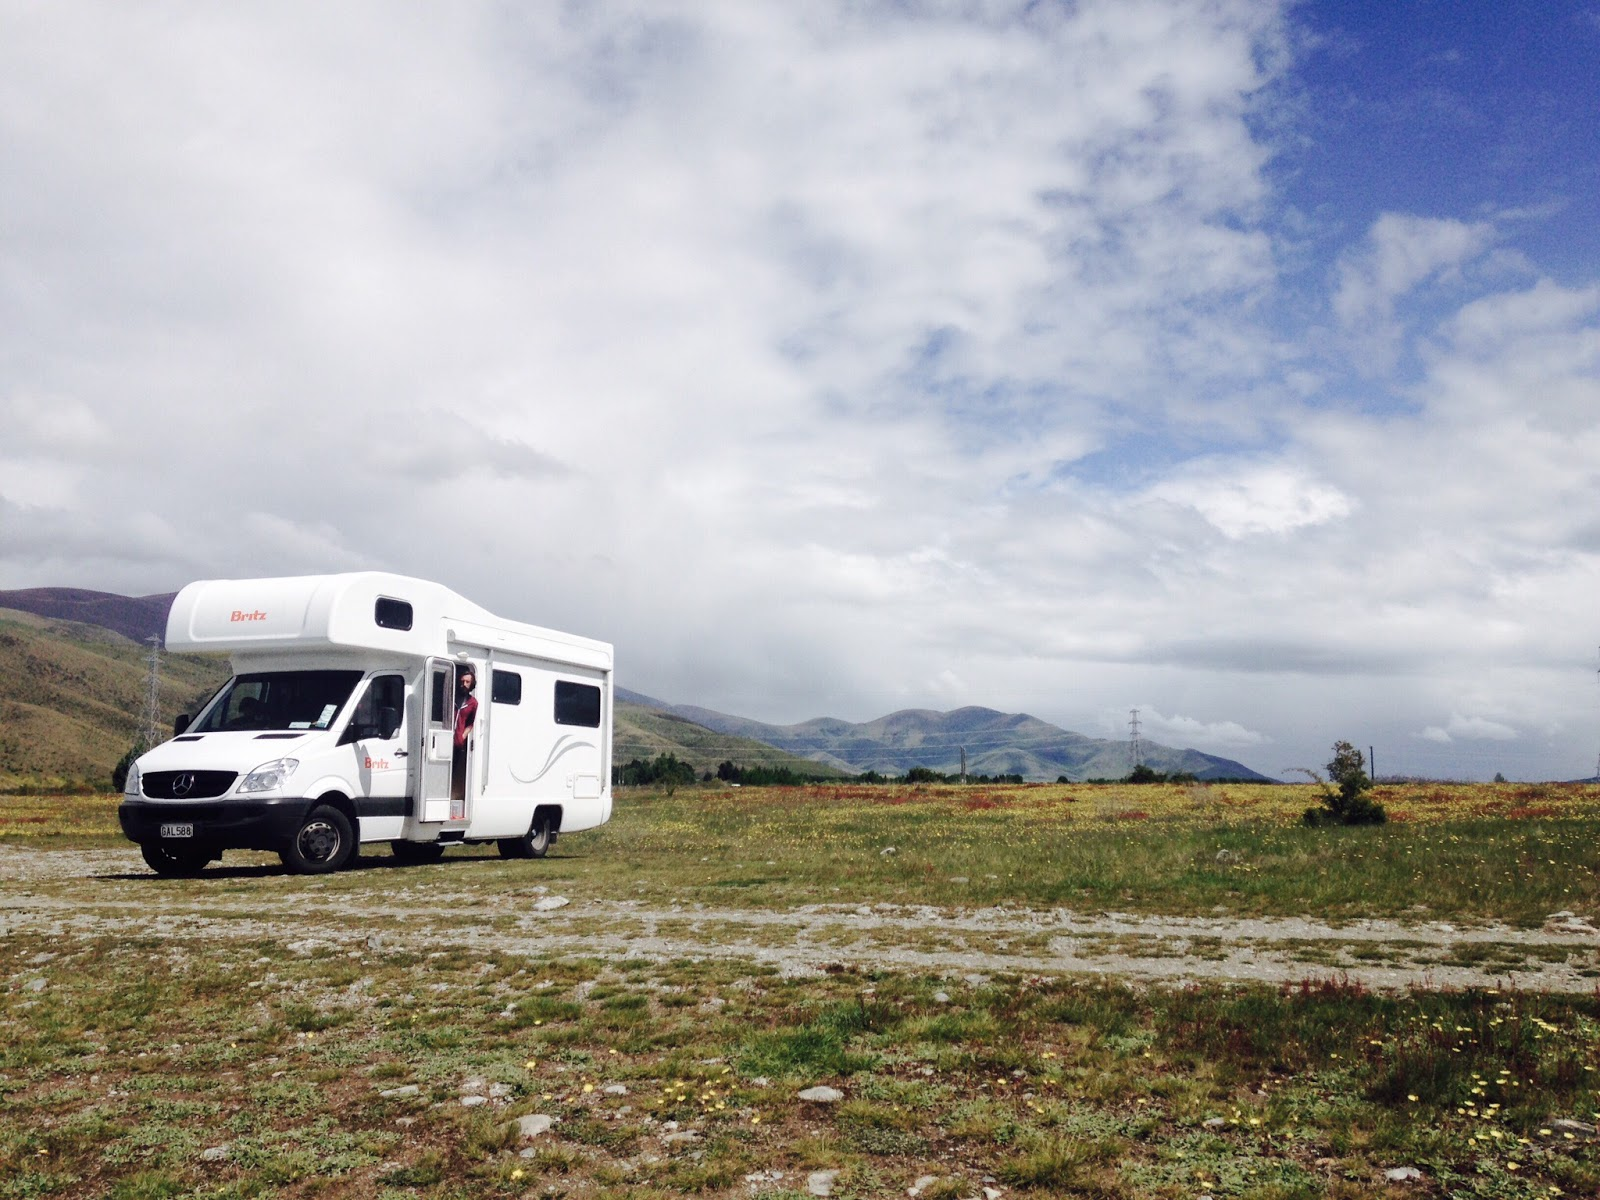 Camping around New Zealand